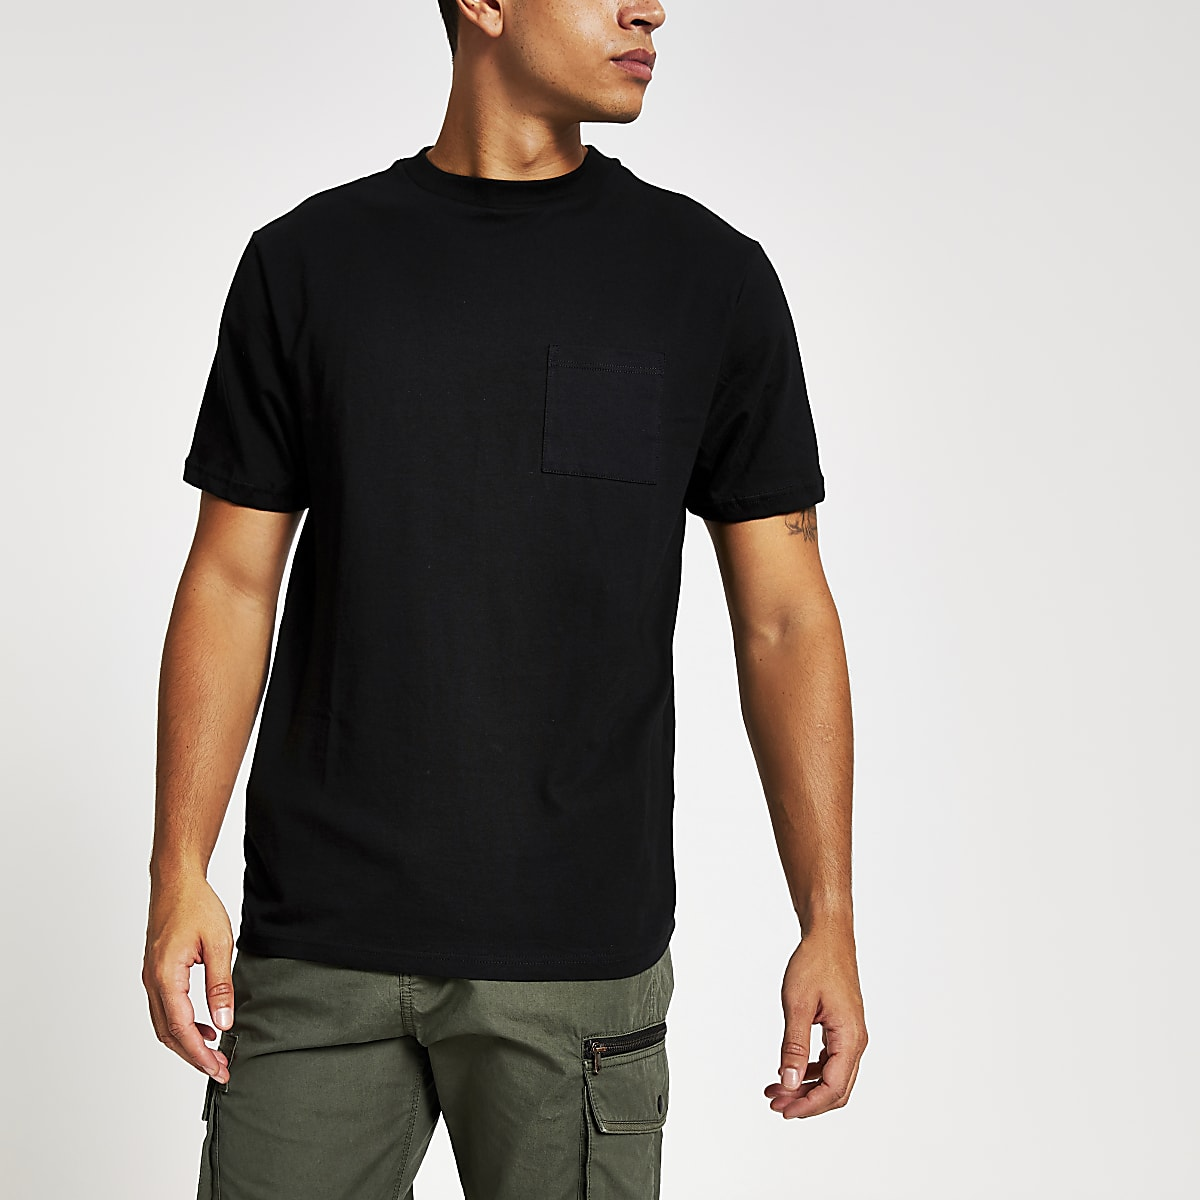 Black chest pocket short sleeve T-shirt